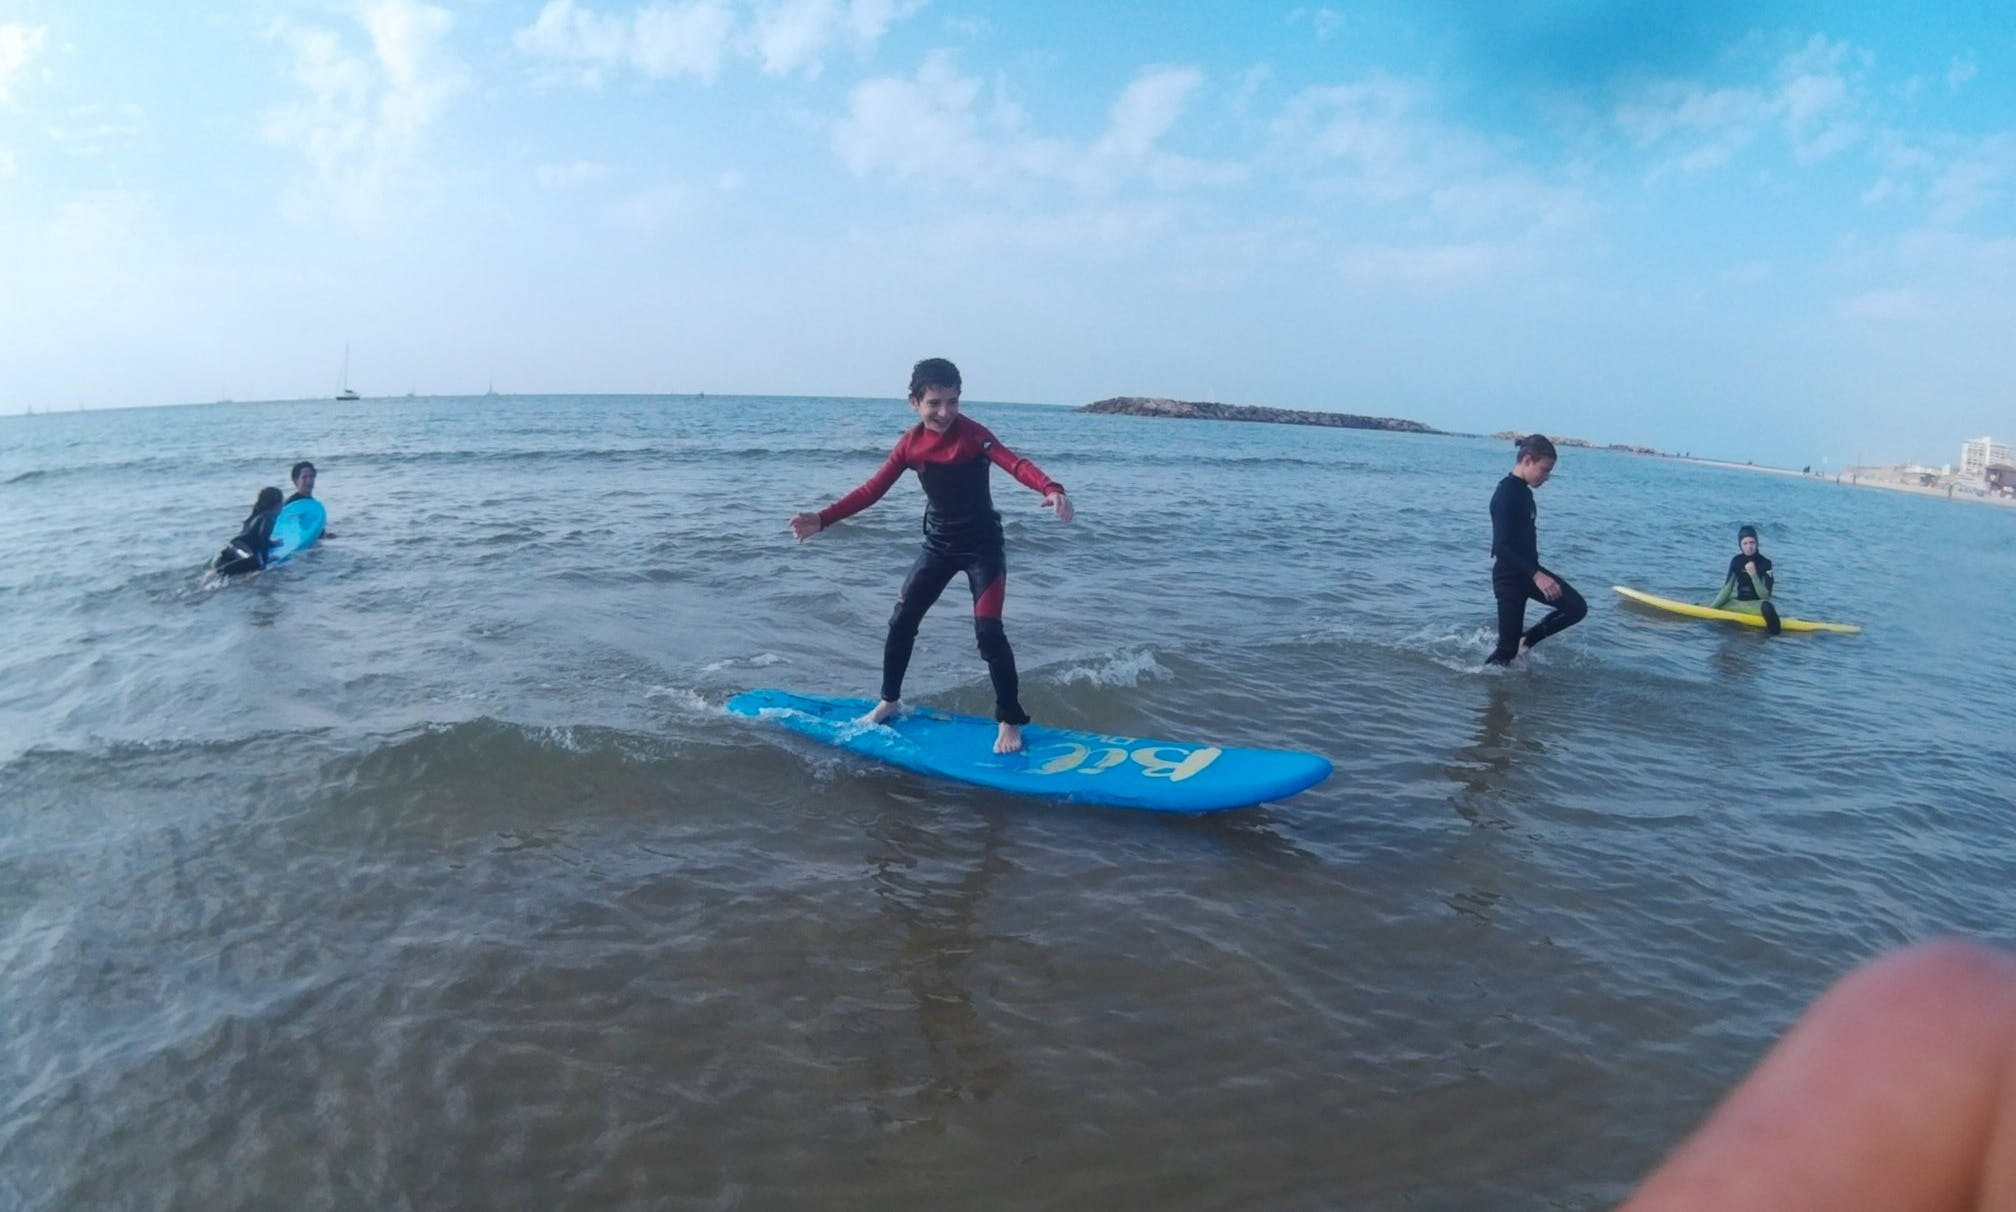 Surfing with Instructor Assaf at the Handicapped beach in Herzliya, Israel